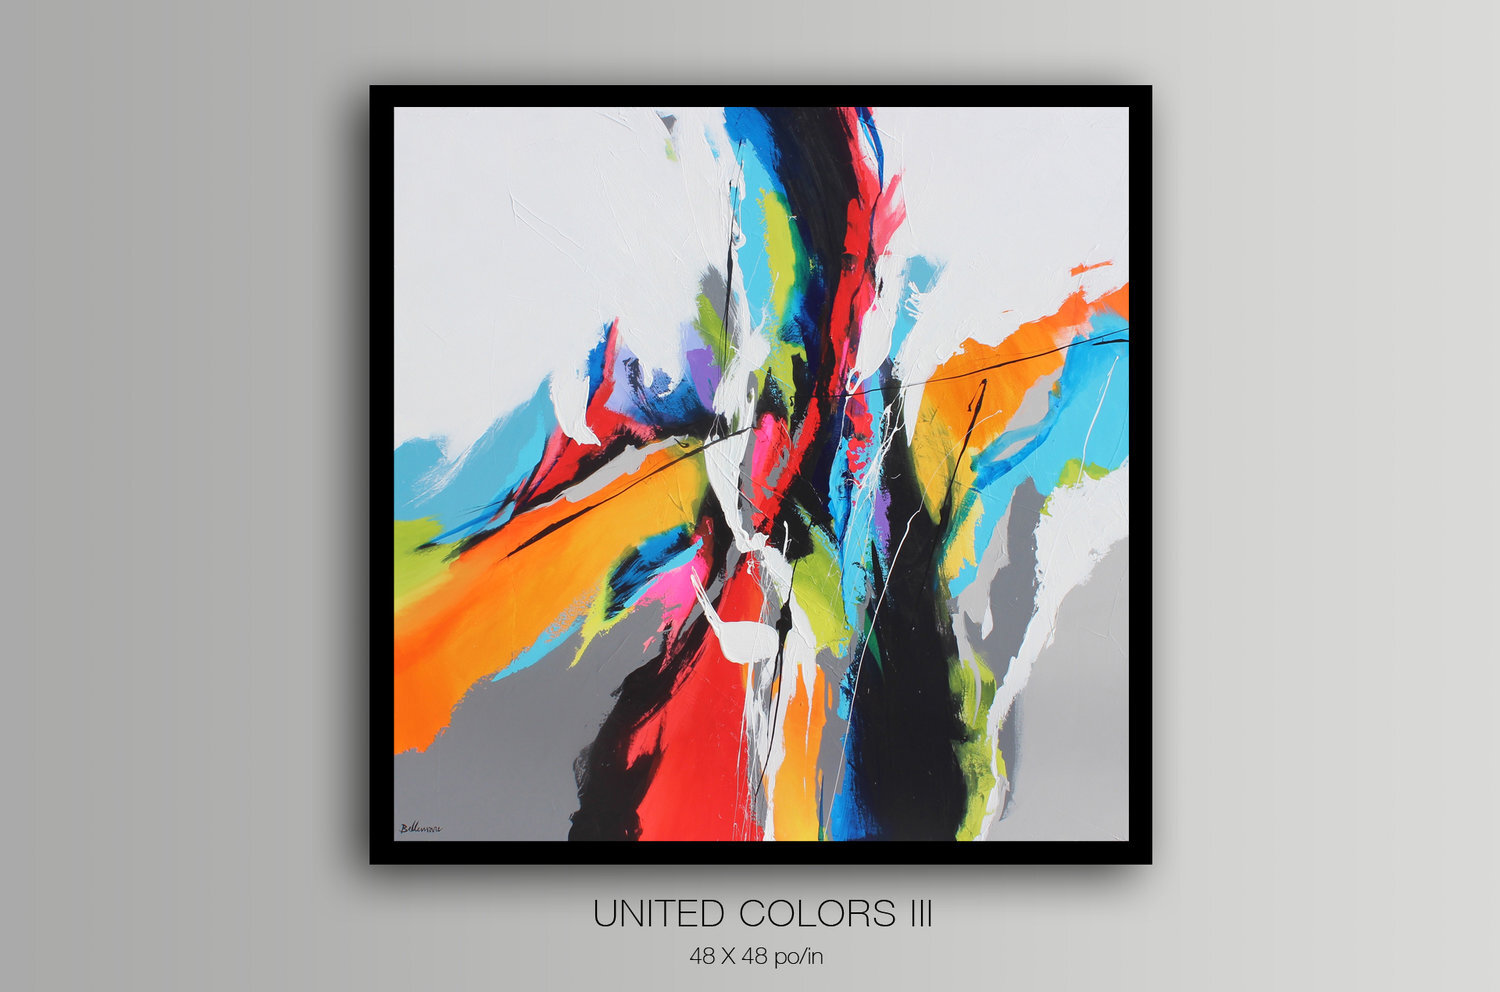 United Colors III - Rythmik Collection